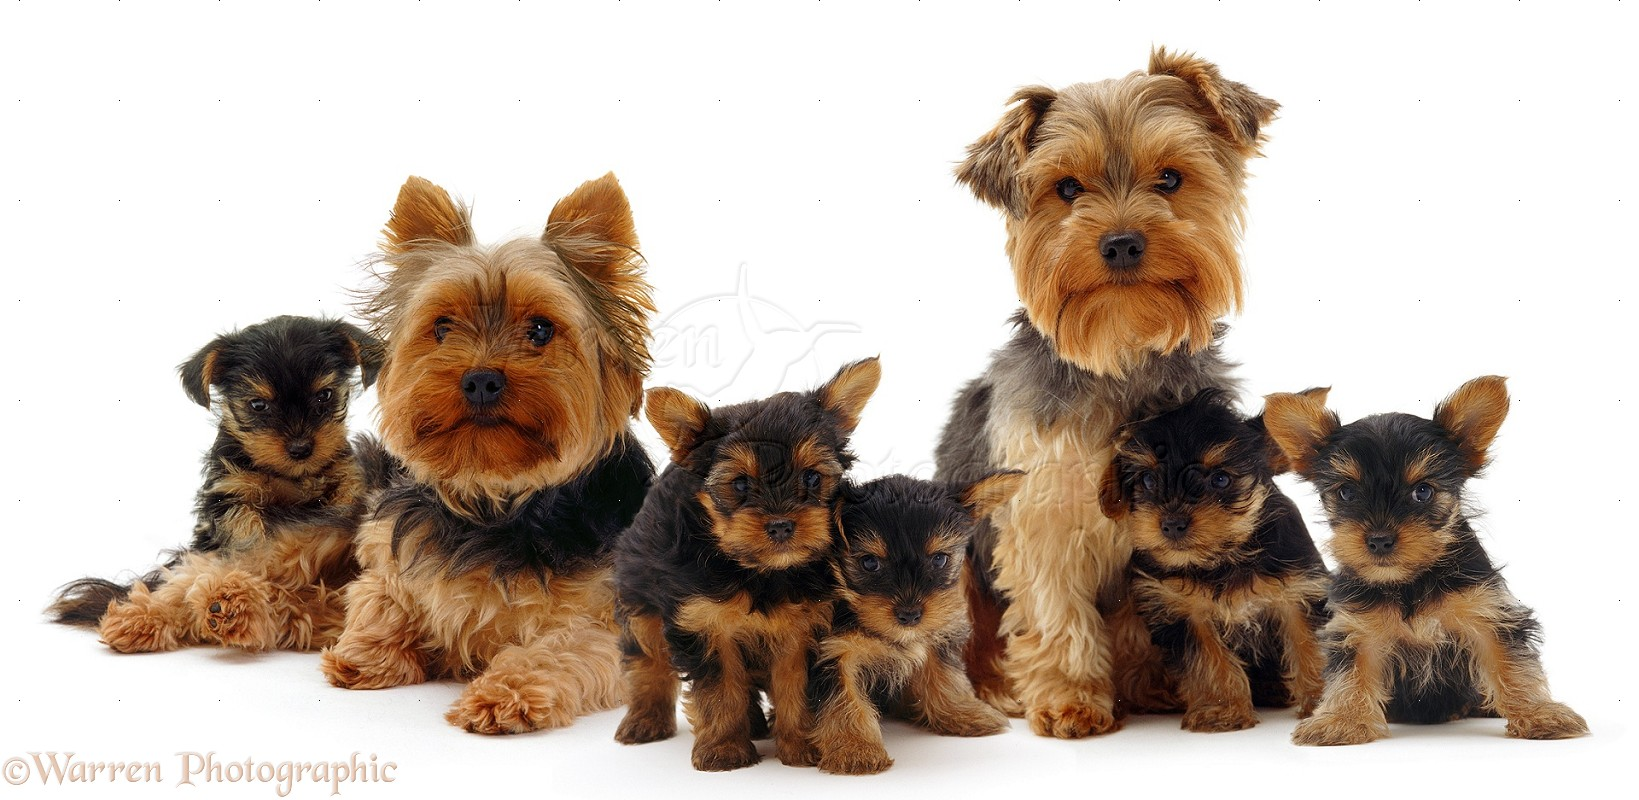 09342-Yorkie-family-white-background.jpg